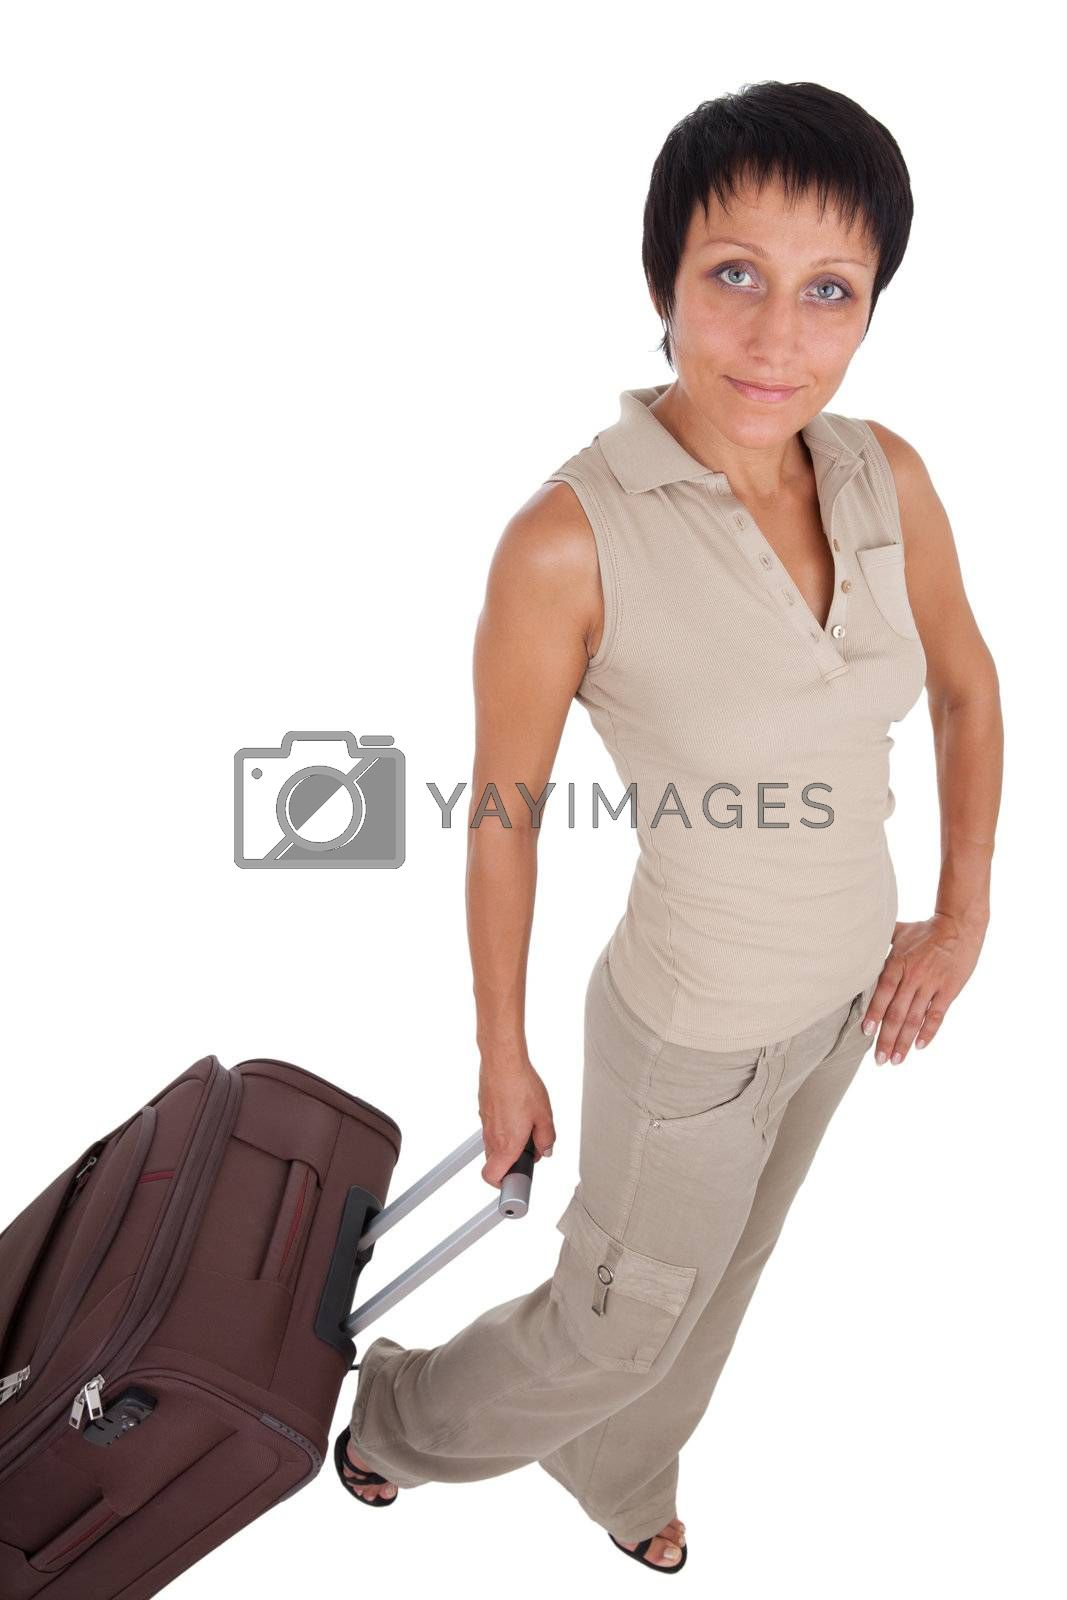 Smiling young tourist haircut woman dressed buff trouser suit stands with brown traveling suitcase isolated